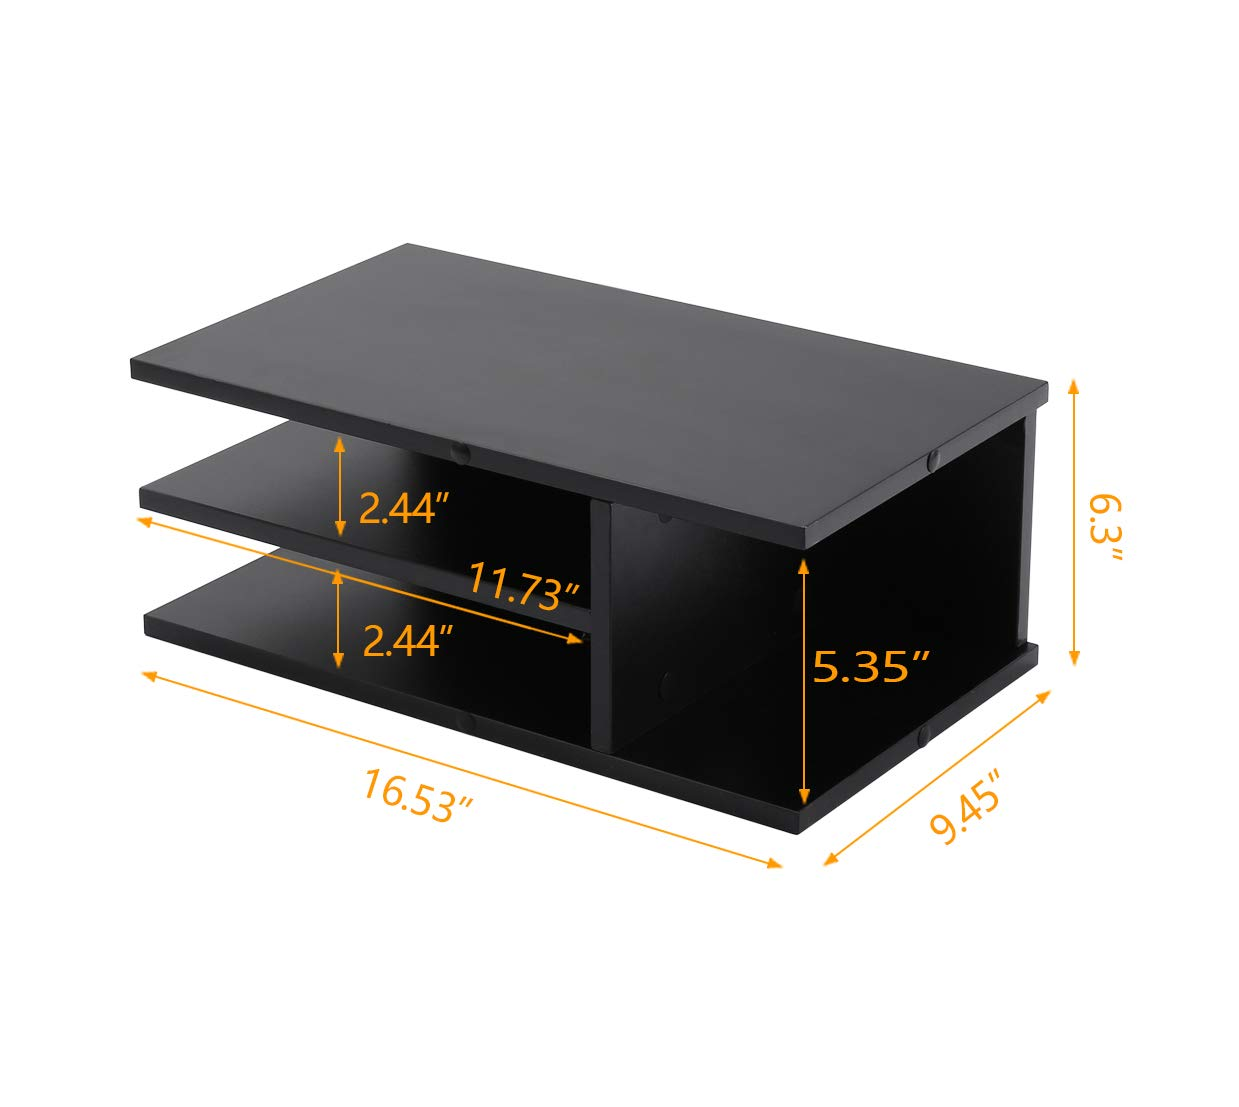 Rfiver Wooden Home Office Supplies Desk Organizer Set, Printer Stands, Computer Tabletop Monitor Riser Stand - 2 Pack, Black DO1003 by Rfiver (Image #3)